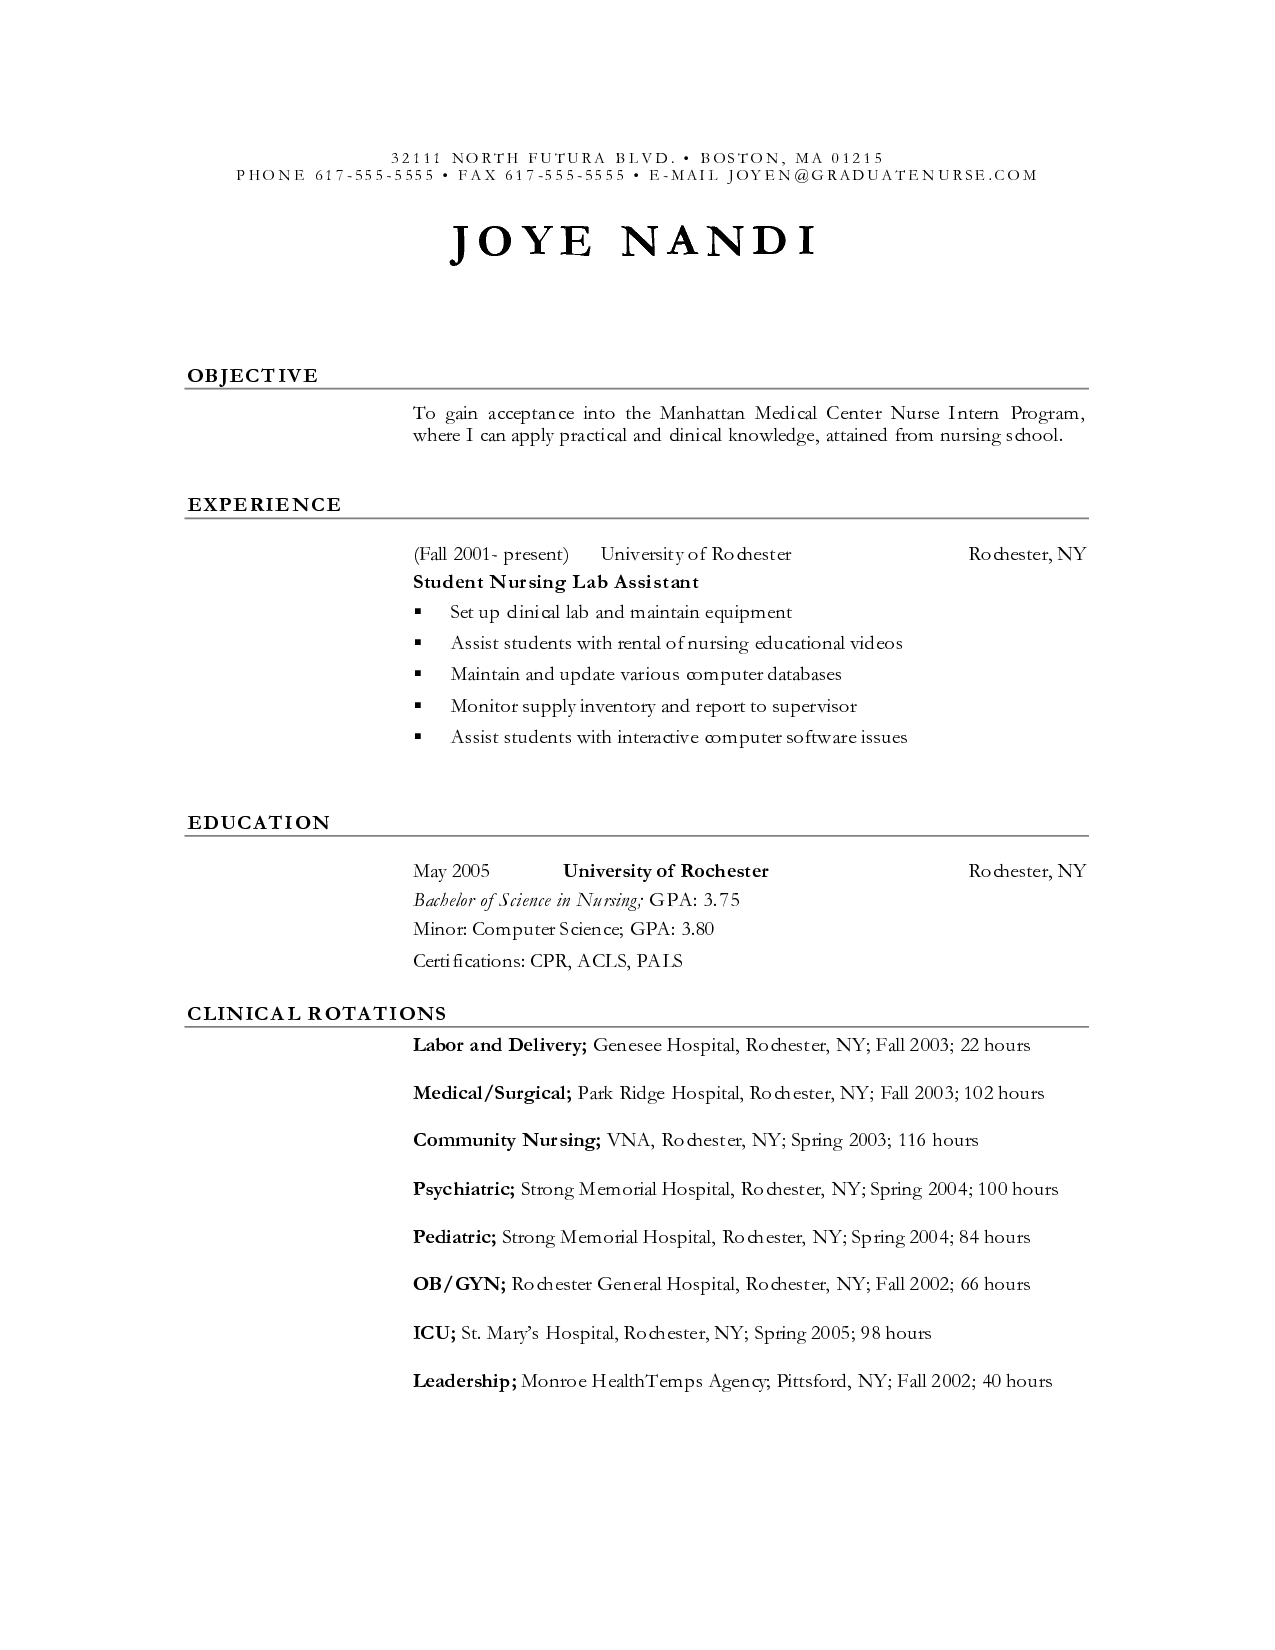 Resume best nursing quotes quotesgram for Cover letter for ob gyn position